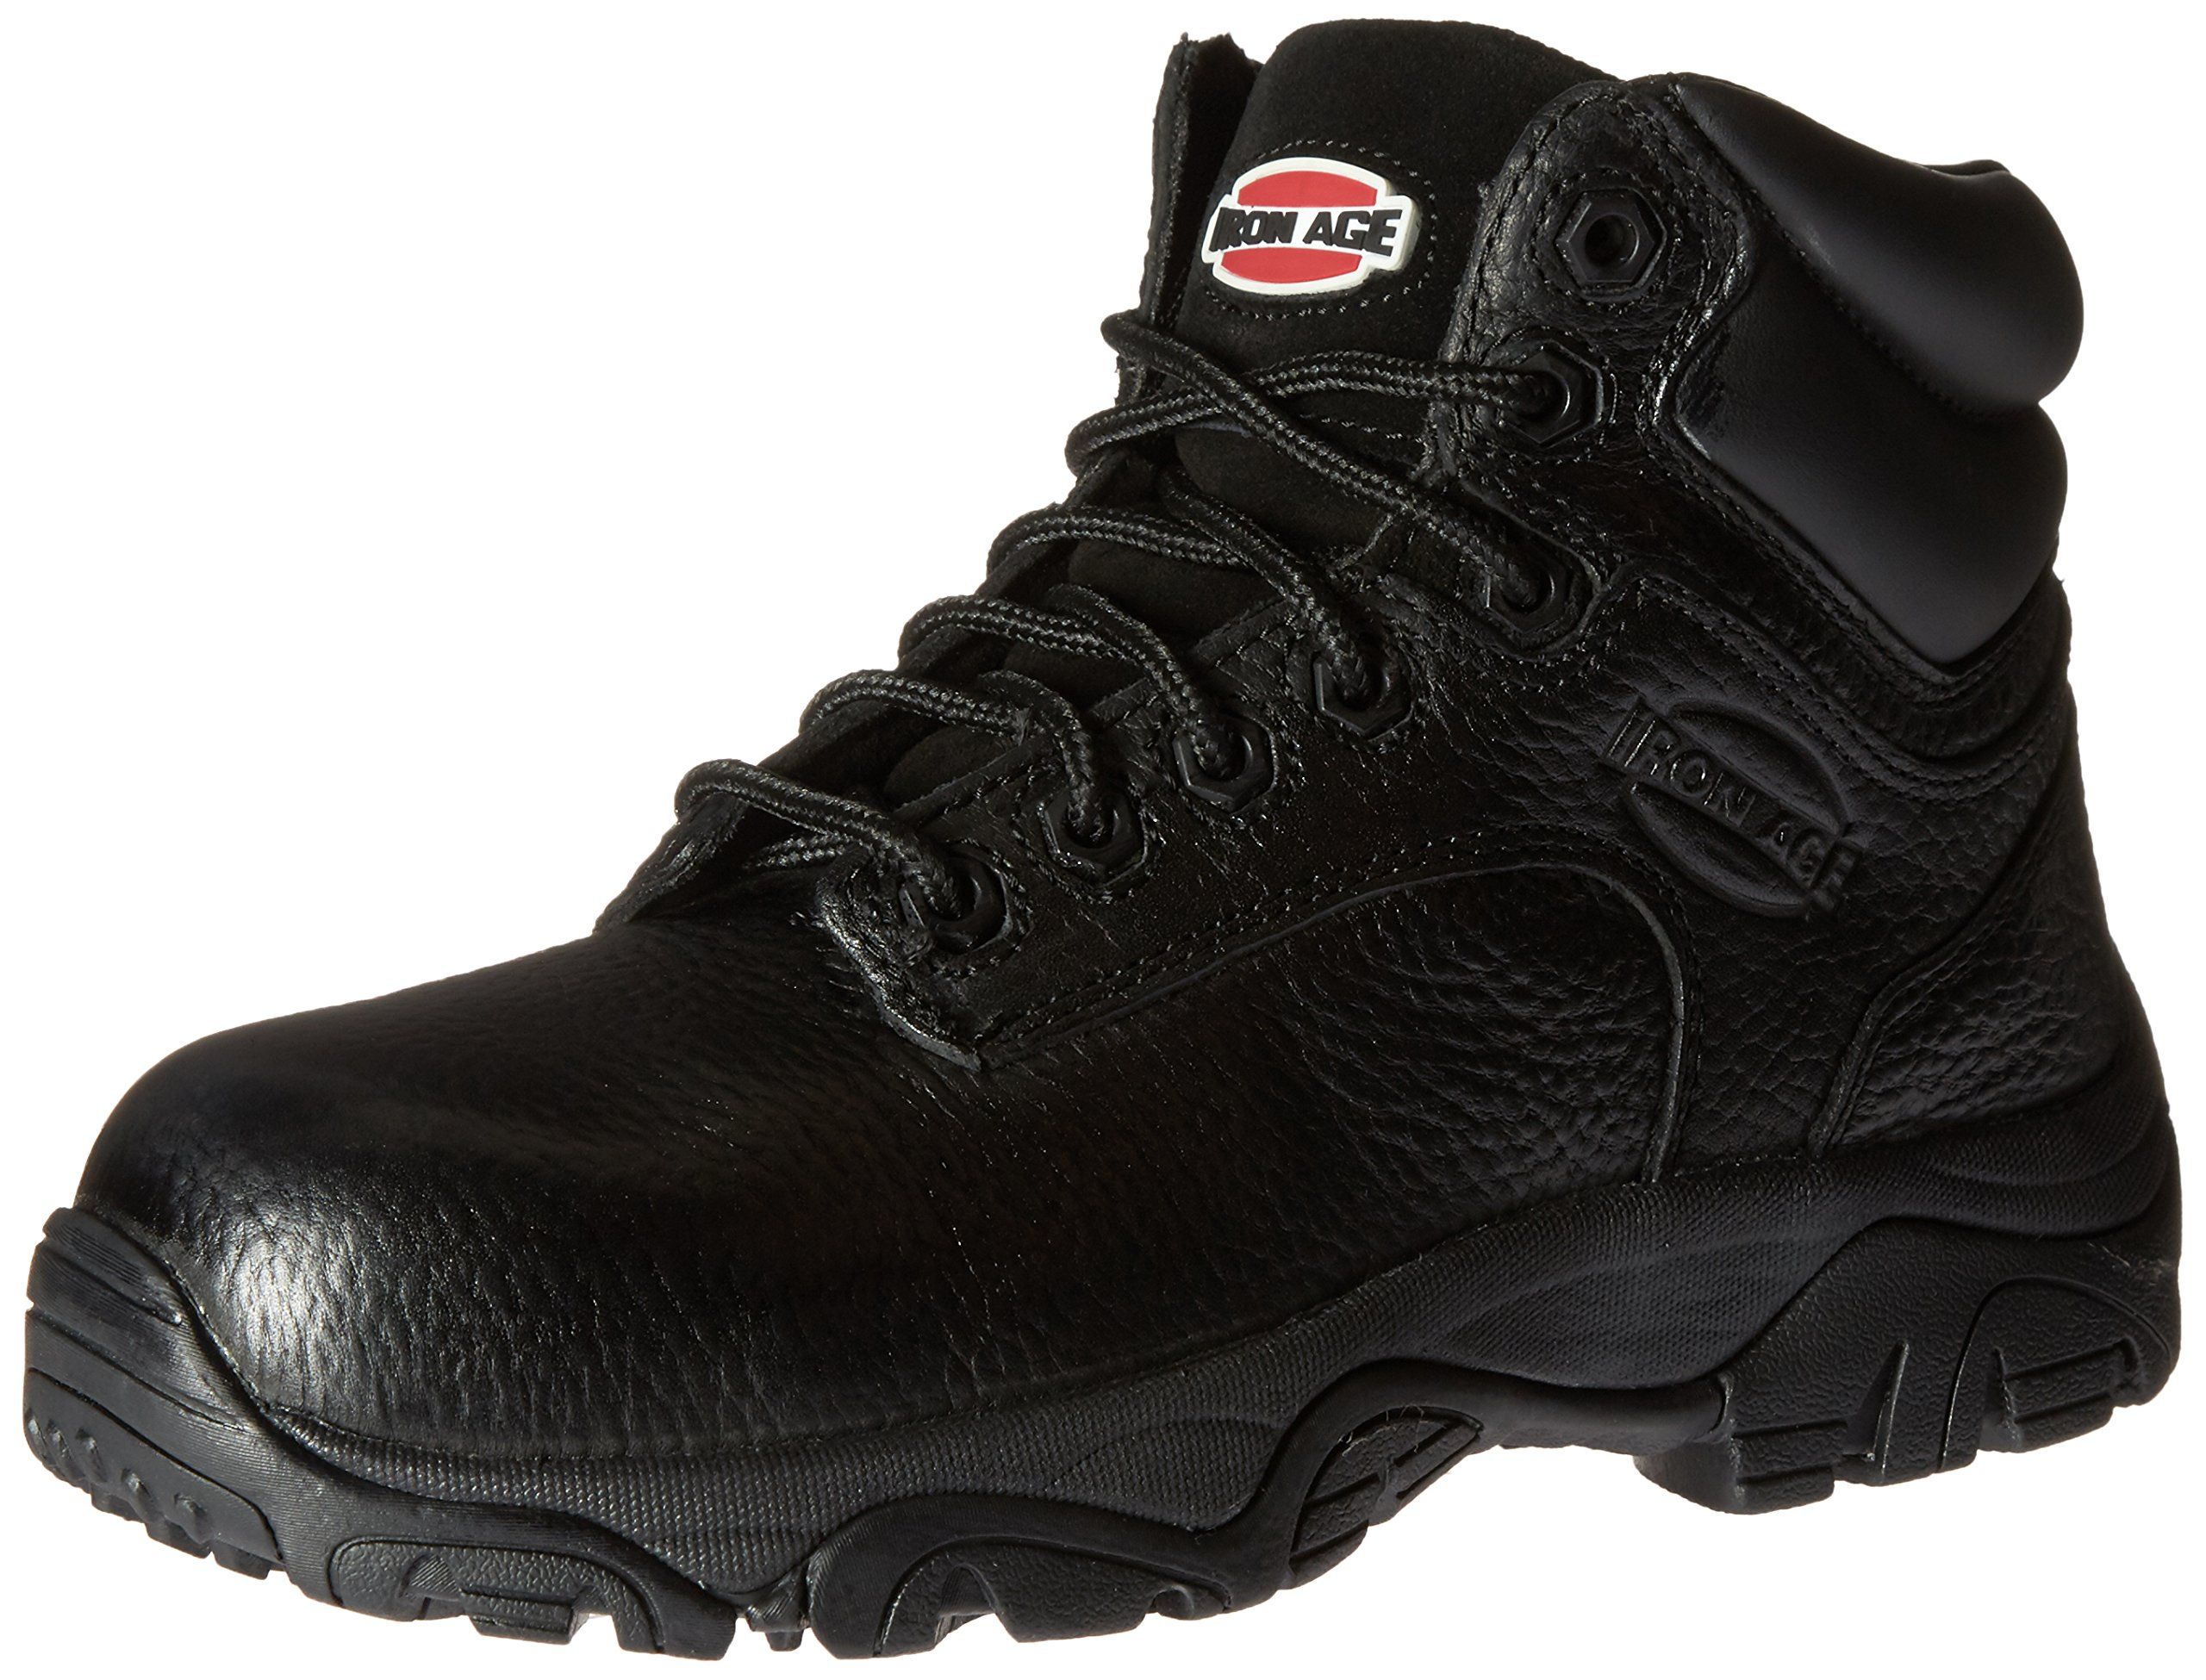 Iron Age Women's IA507 Trencher Fire and Safety Shoe, Black, 6 W US